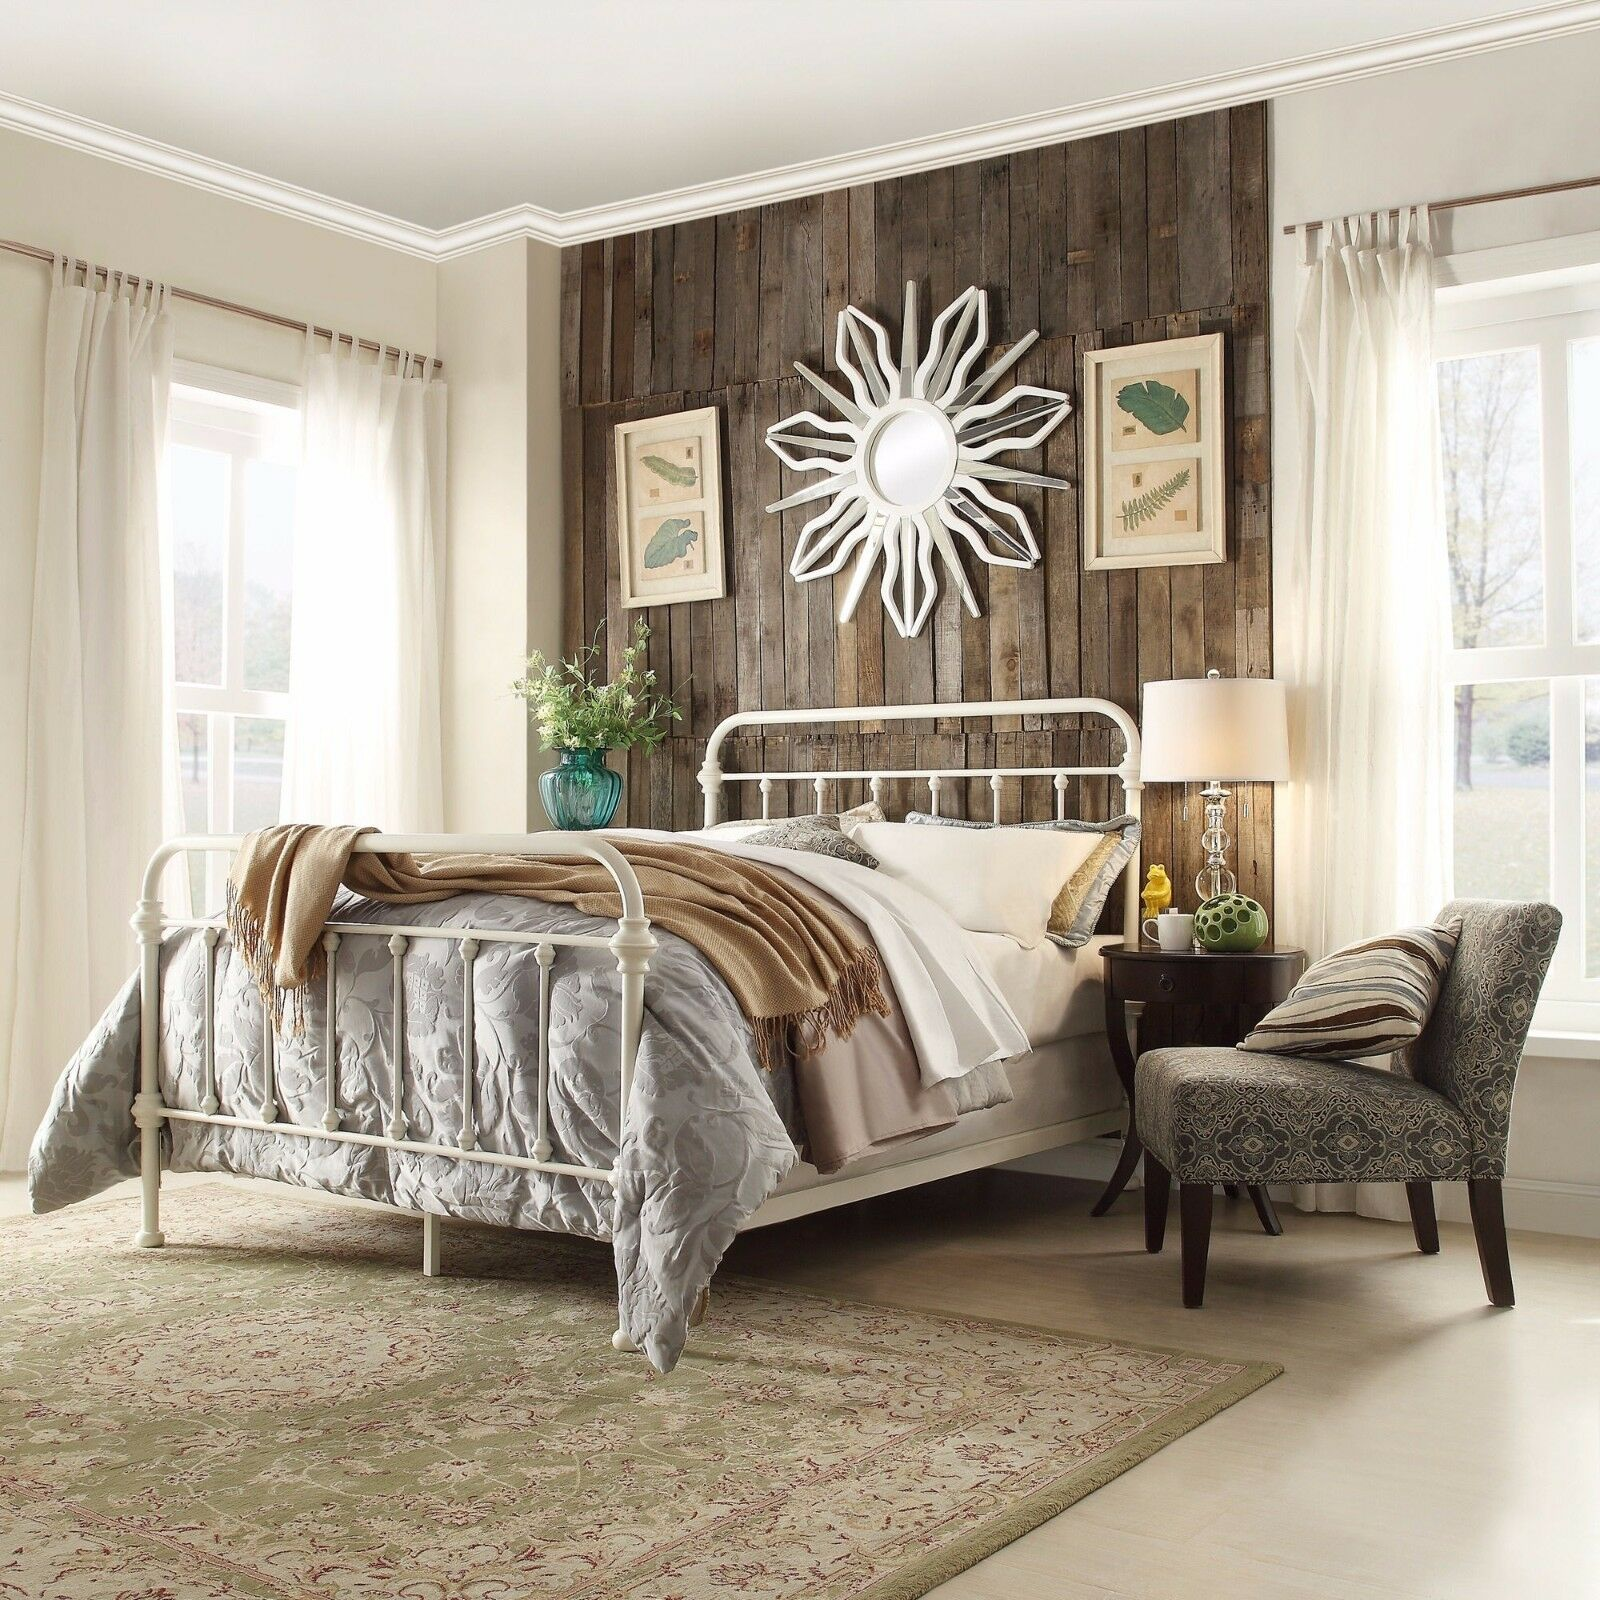 White Iron Trees Queen Bed Frame